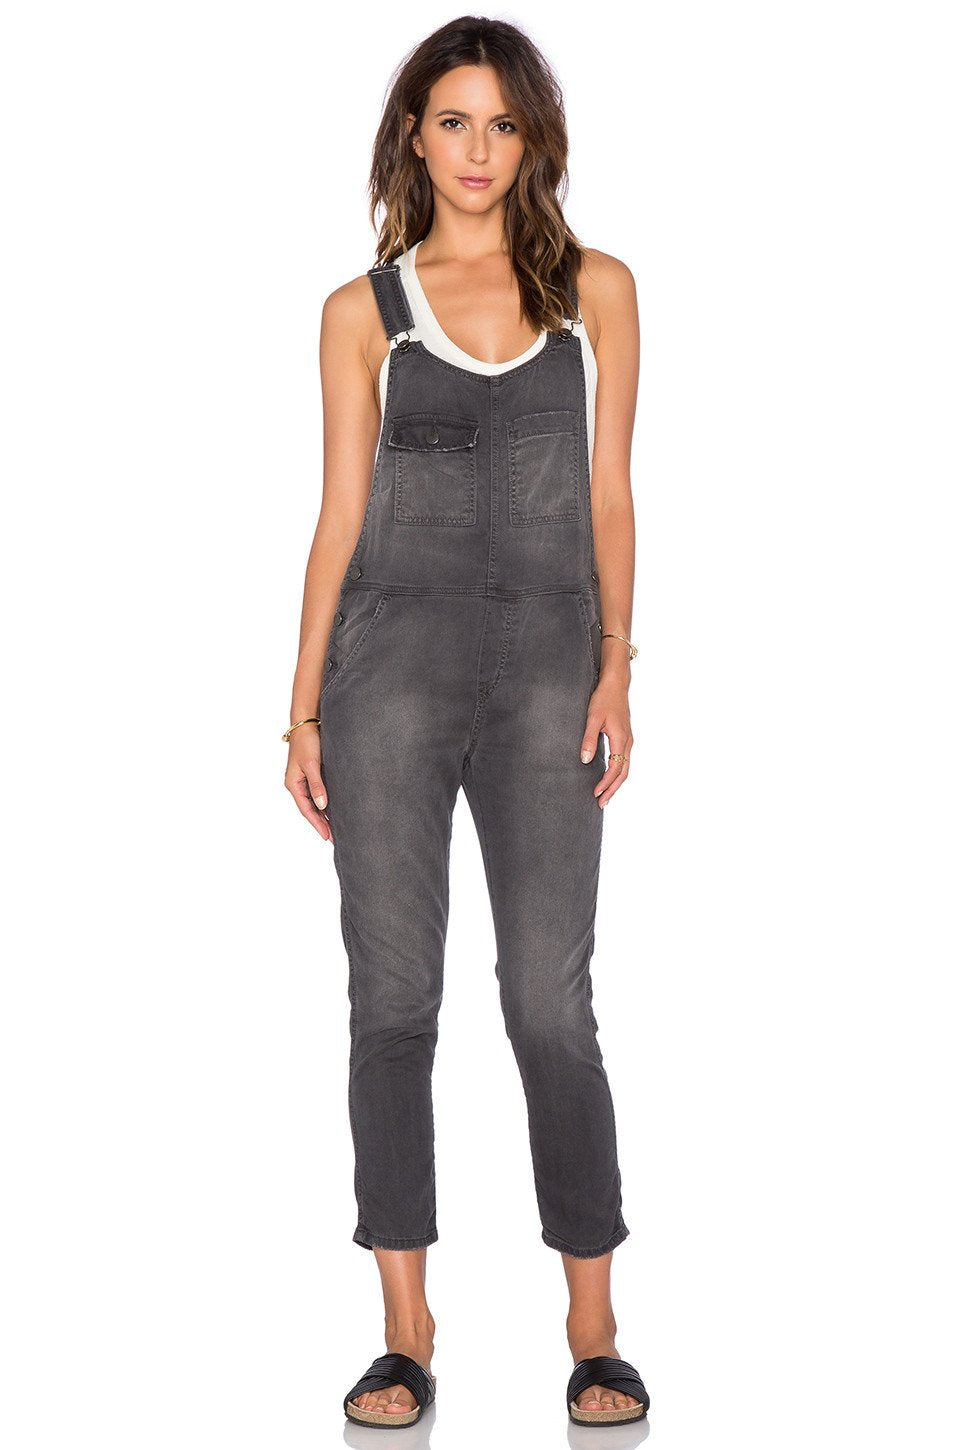 The Carpenter Overall Jumpsuit - Kustom Label - 1